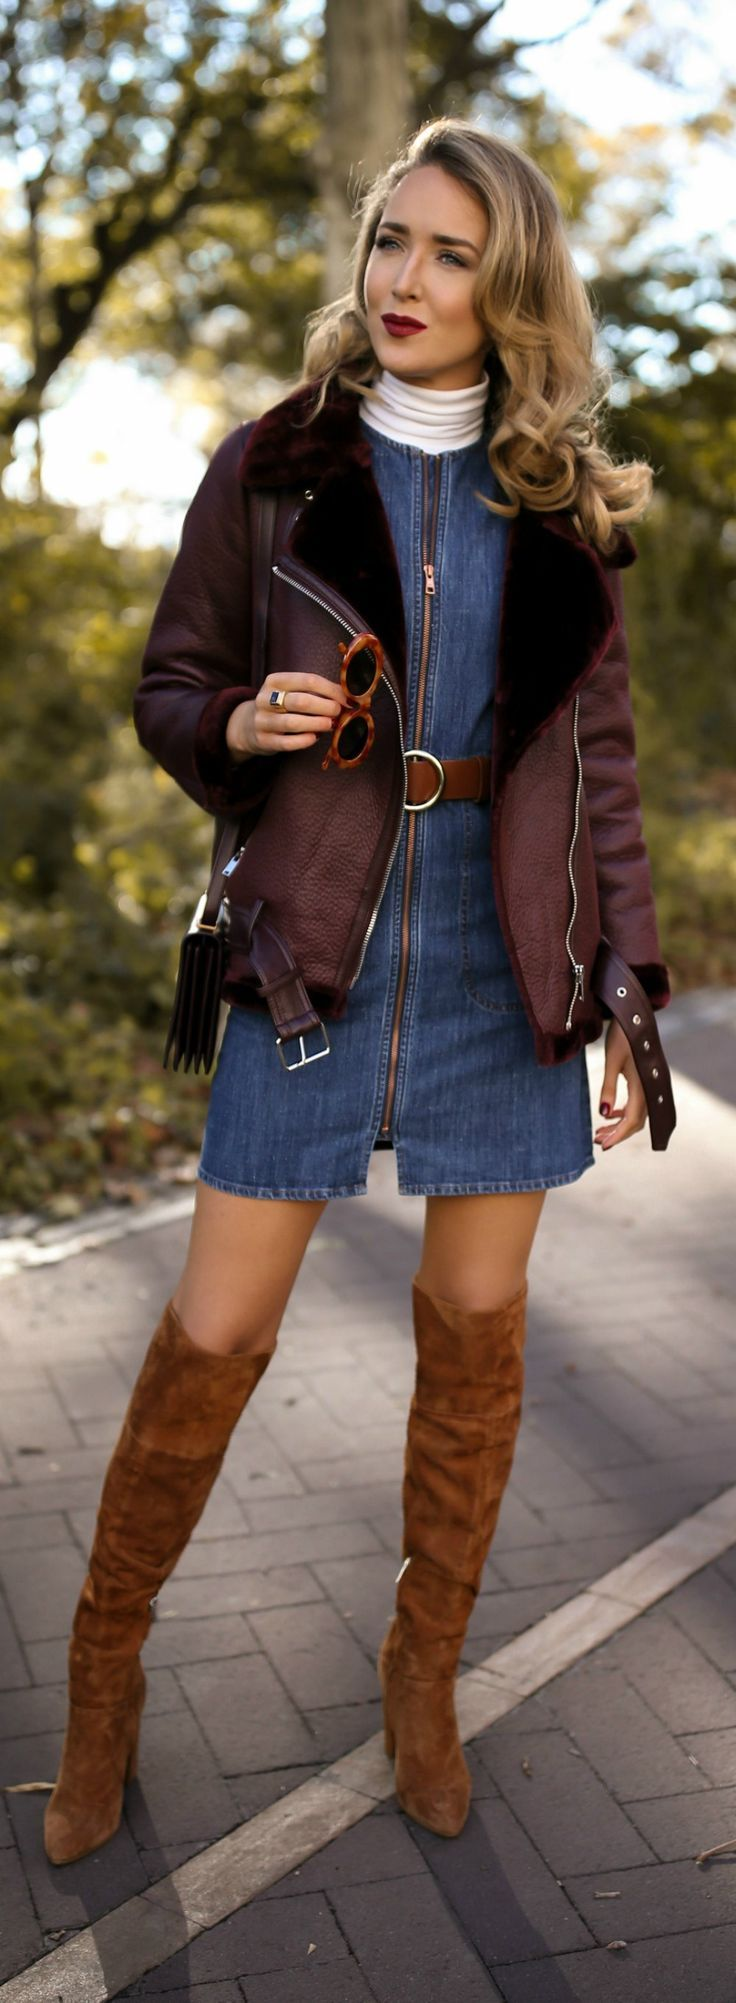 30 DRESSES IN 30 DAYS: Fall Bonfire // Sleeveless zip-up denim dress, white layering turtleneck, brown suede over-the-knee boots, brown leather circle belt, burgundy handbag, burgundy leather moto jacket with faux fur and cat eye sunglasses {See by Chloe, YSL, Three Dots, classic fall style, fall winter 2017, fall bonfire, classic dressing, fashion blogger, street style}